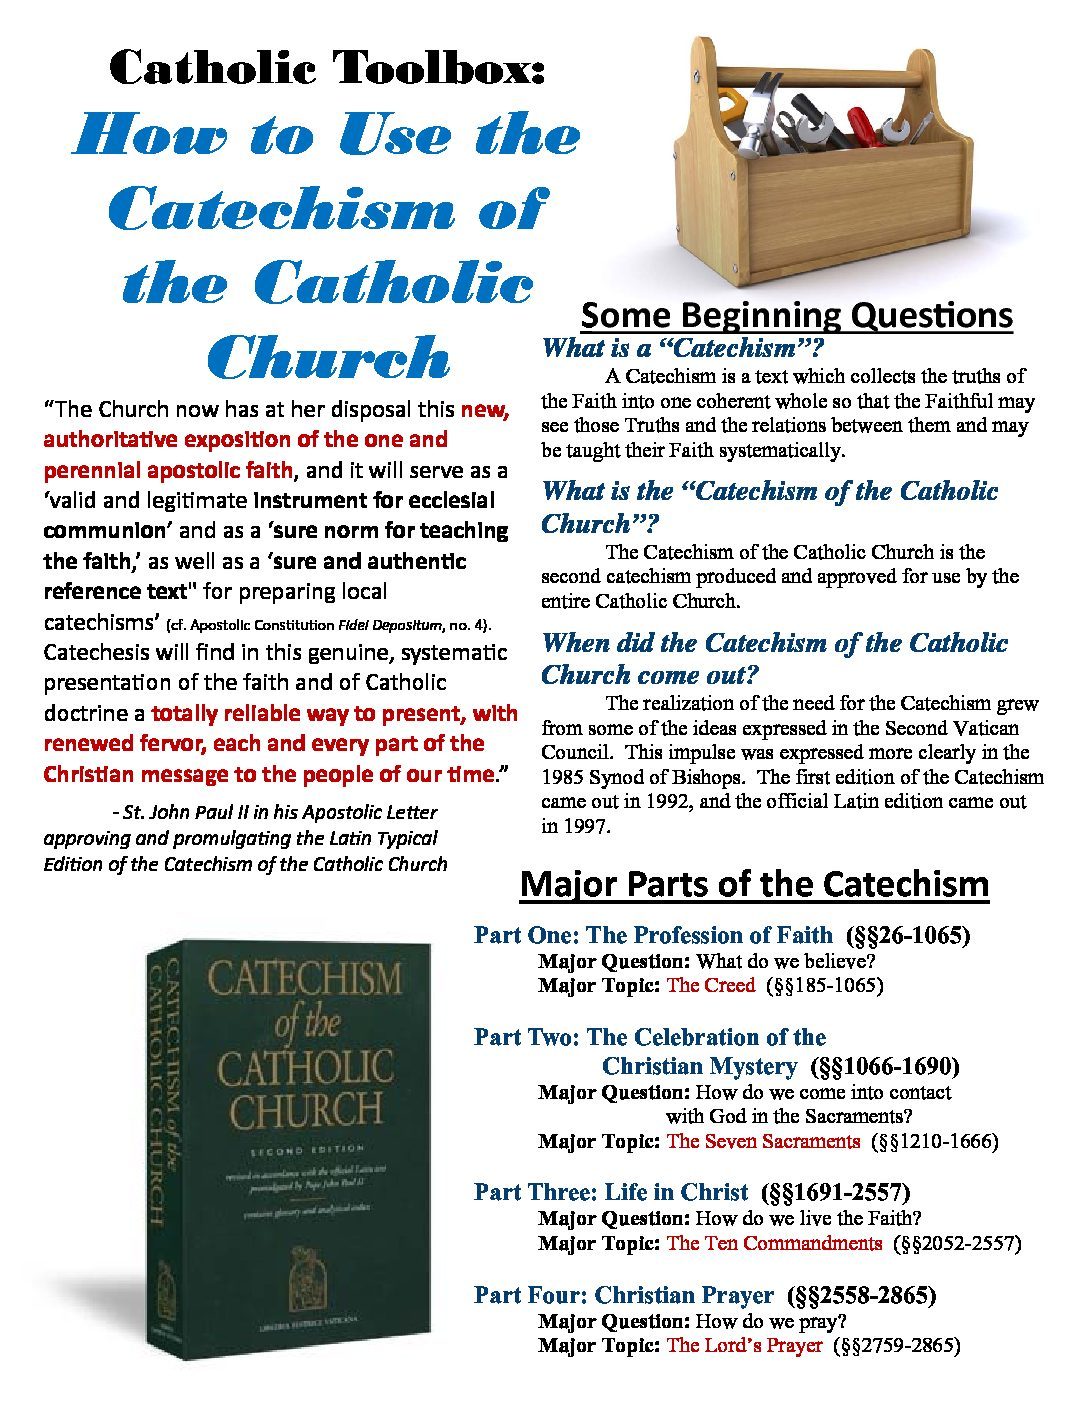 How To Use The Catechism Handout Pdf